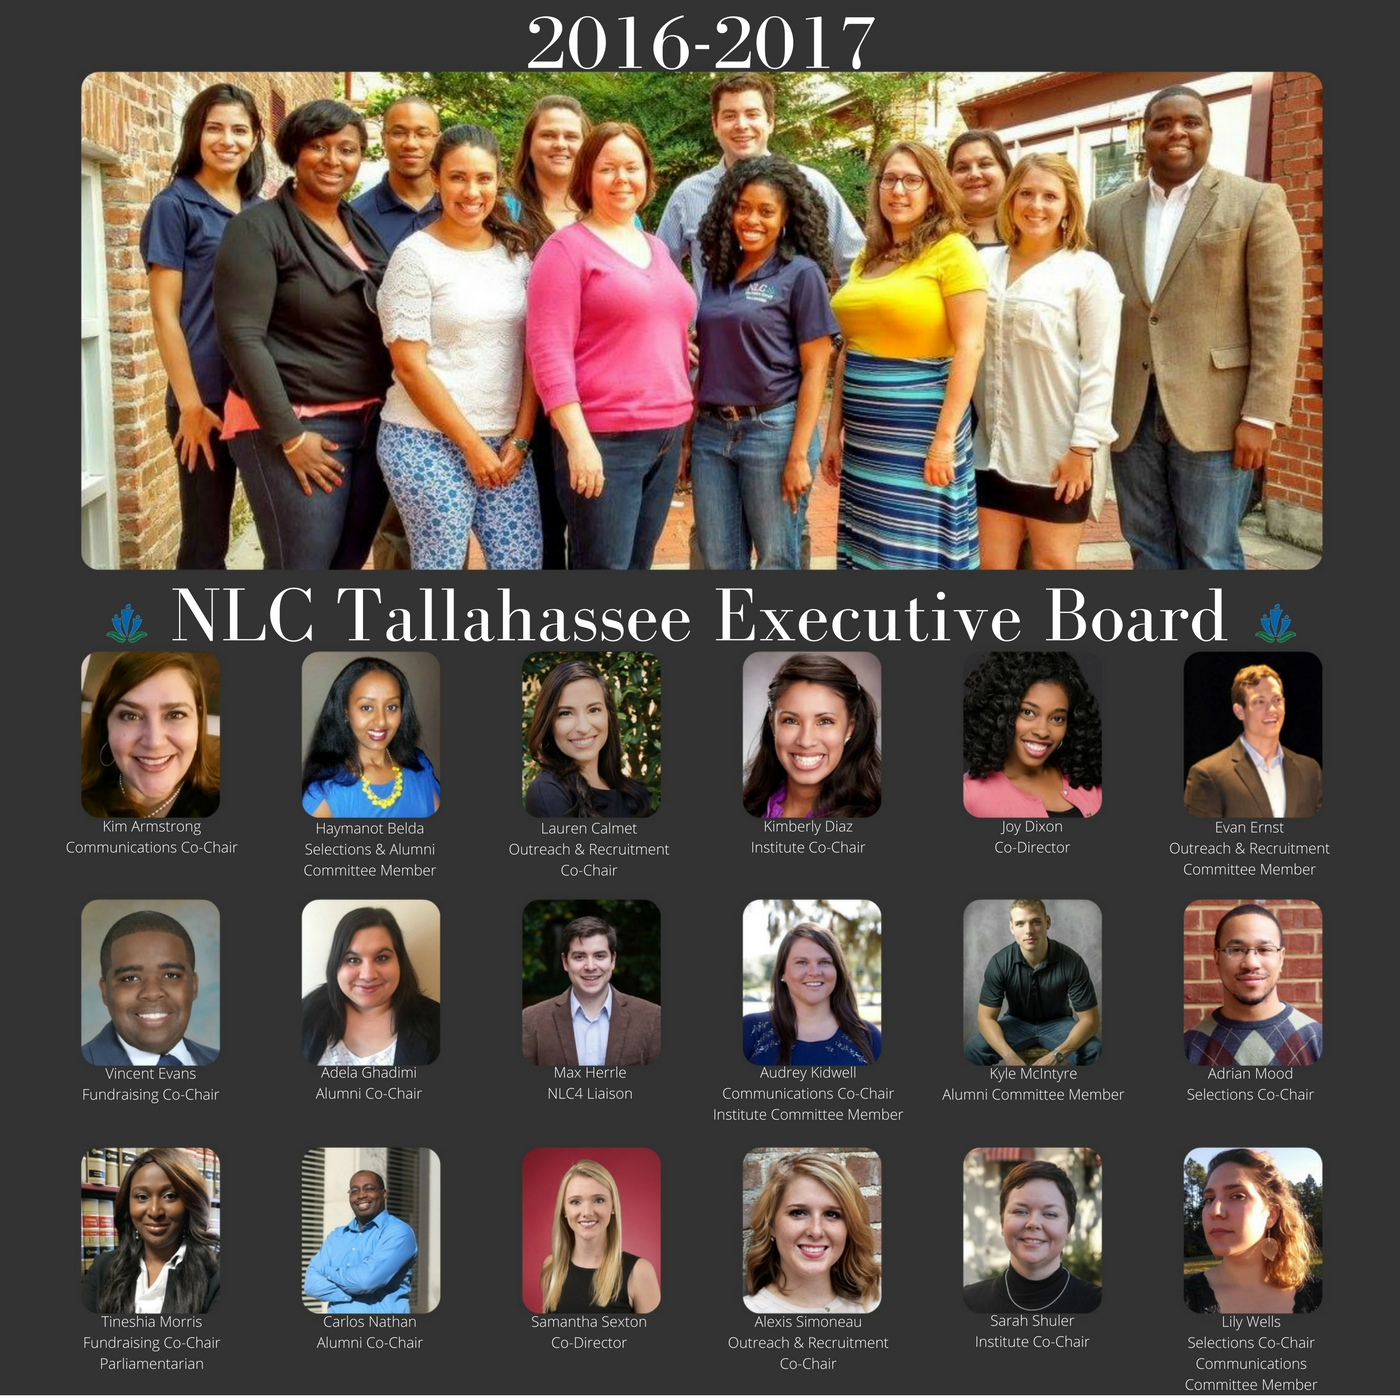 New Leaders Council Tallahassee 2016-2017 Board Positions Chapter Leadership Co-director: Joy Dixon Co-director: Samantha Sexton Communications Co-chair: Kim Armstrong Co-chair: Audrey Kidwell Committee: Lily Wells Institute Co-chair: Sarah Shuler Co-chair: Kimberly Diaz Committee: Audrey Kidwell Fundraising Co-Chairs Co-Chair: Tineshia Morris Co-Chair: Vince Evans Recruitment/Outreach Co-Chair: Lauren Calmet Co-Chair: Alexis Simoneau Committee: Evan Ernst Selections Co-Chair: Adrian Mood Co-Chair: Lily Wells Committee: Haymanot Belda Alumni Co-Chair: Carlos Nathan Co-Chair: Adela Ghadimi Committee: Kyle McIntyre, Haymanot Belda NLC4 Liaison Max Herrle Bylaws/Parliamentarian (non-voting) Tineshia Morris Recording Secretary (non-voting): OPEN